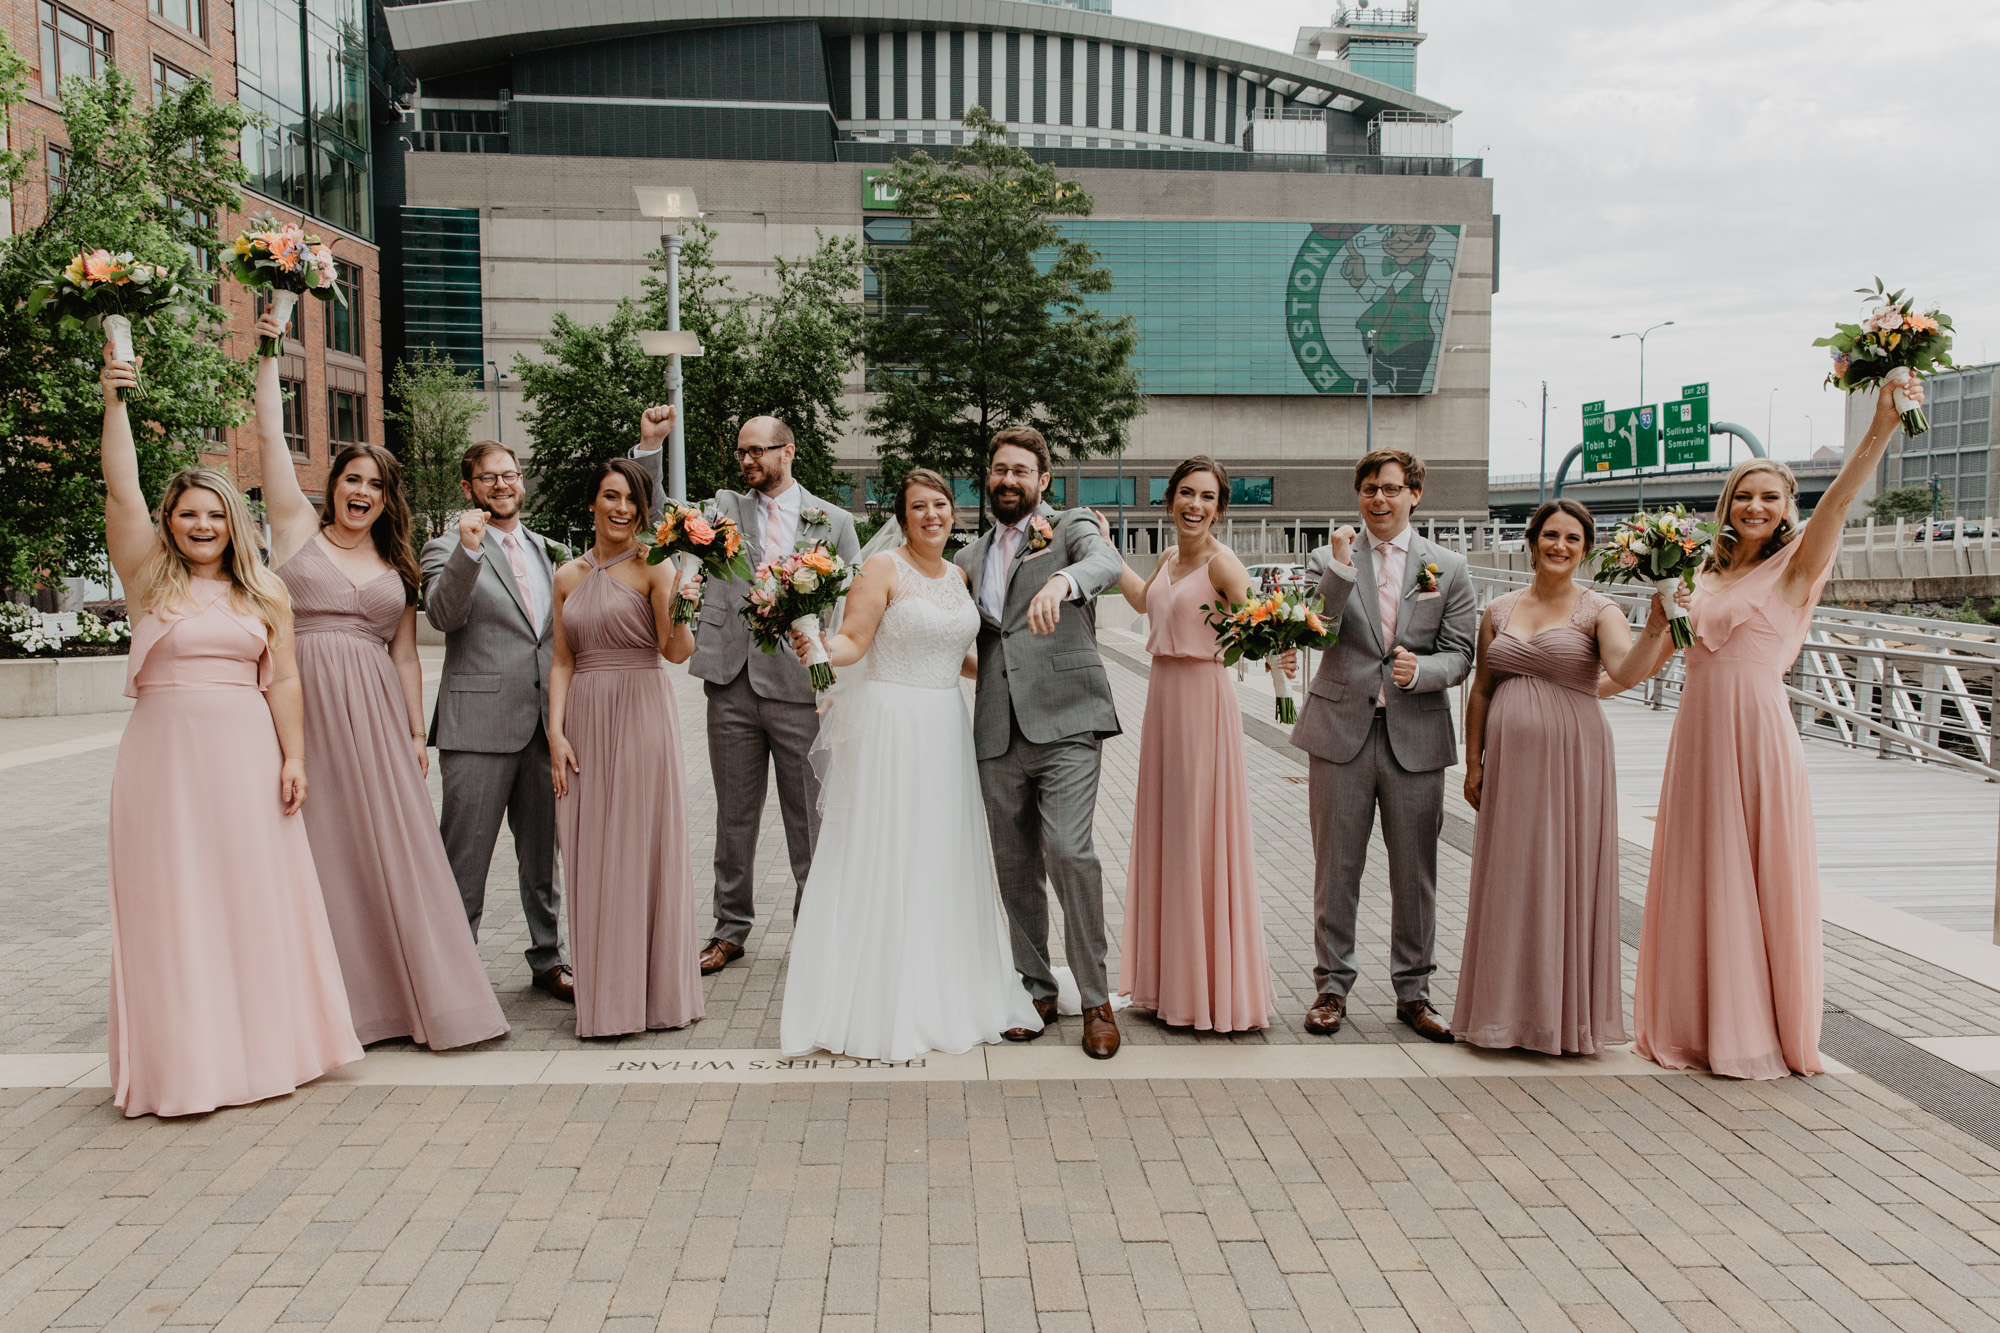 Bridal party poses at Lovejoy Wharf in front of the TD Garden